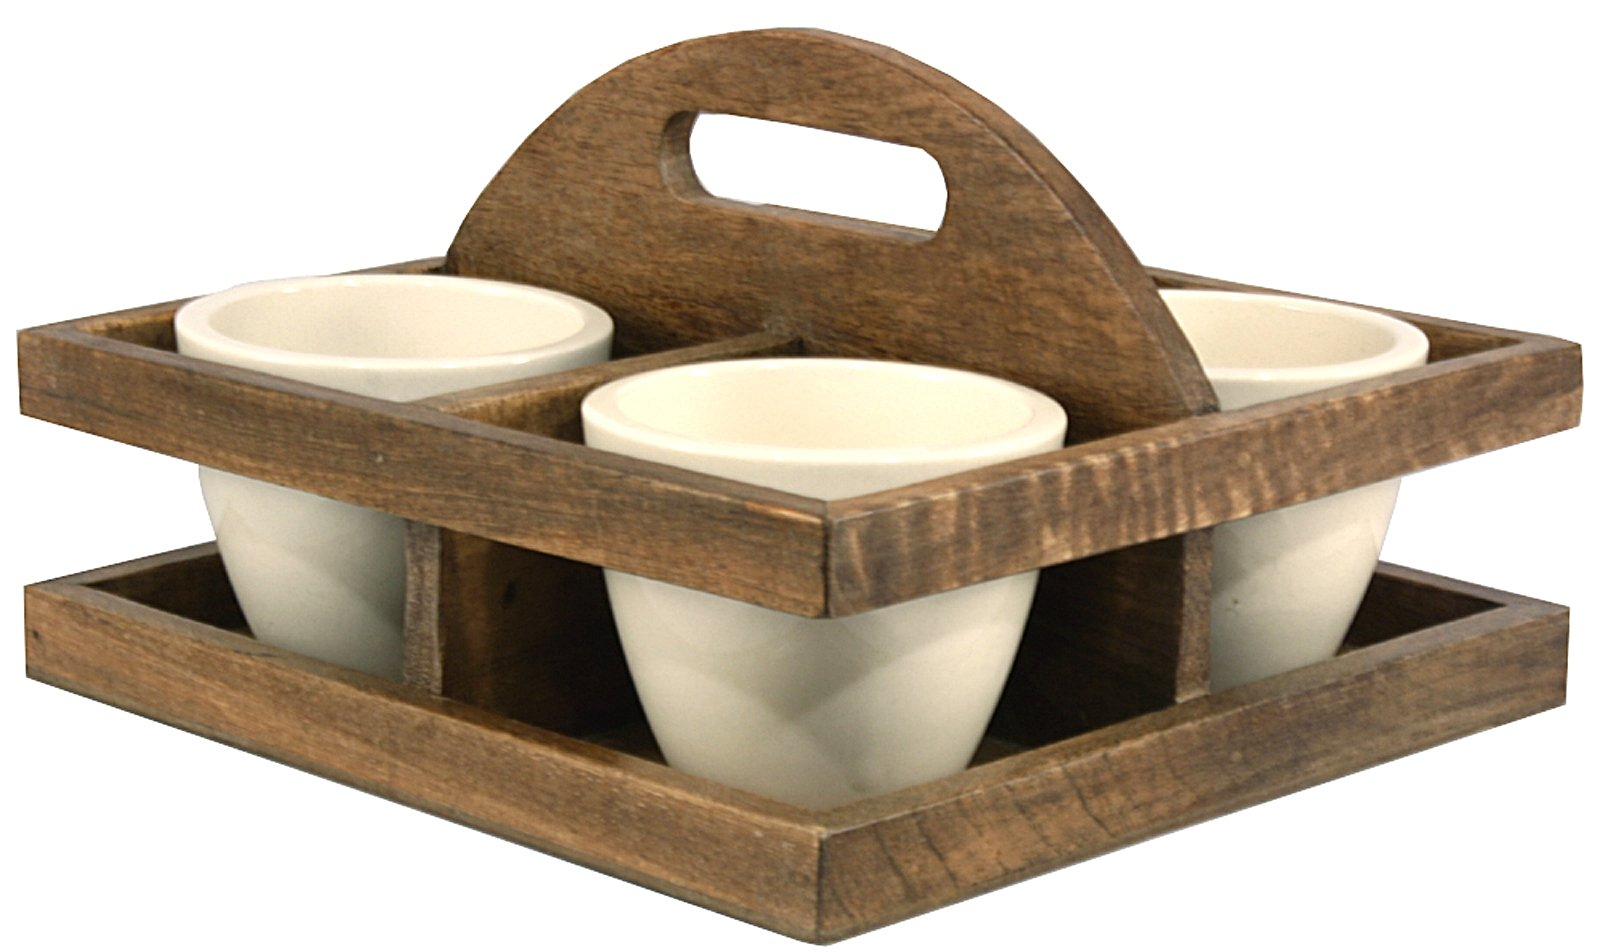 Bowl/Planter Tray with Handle - Soap Scent & Home